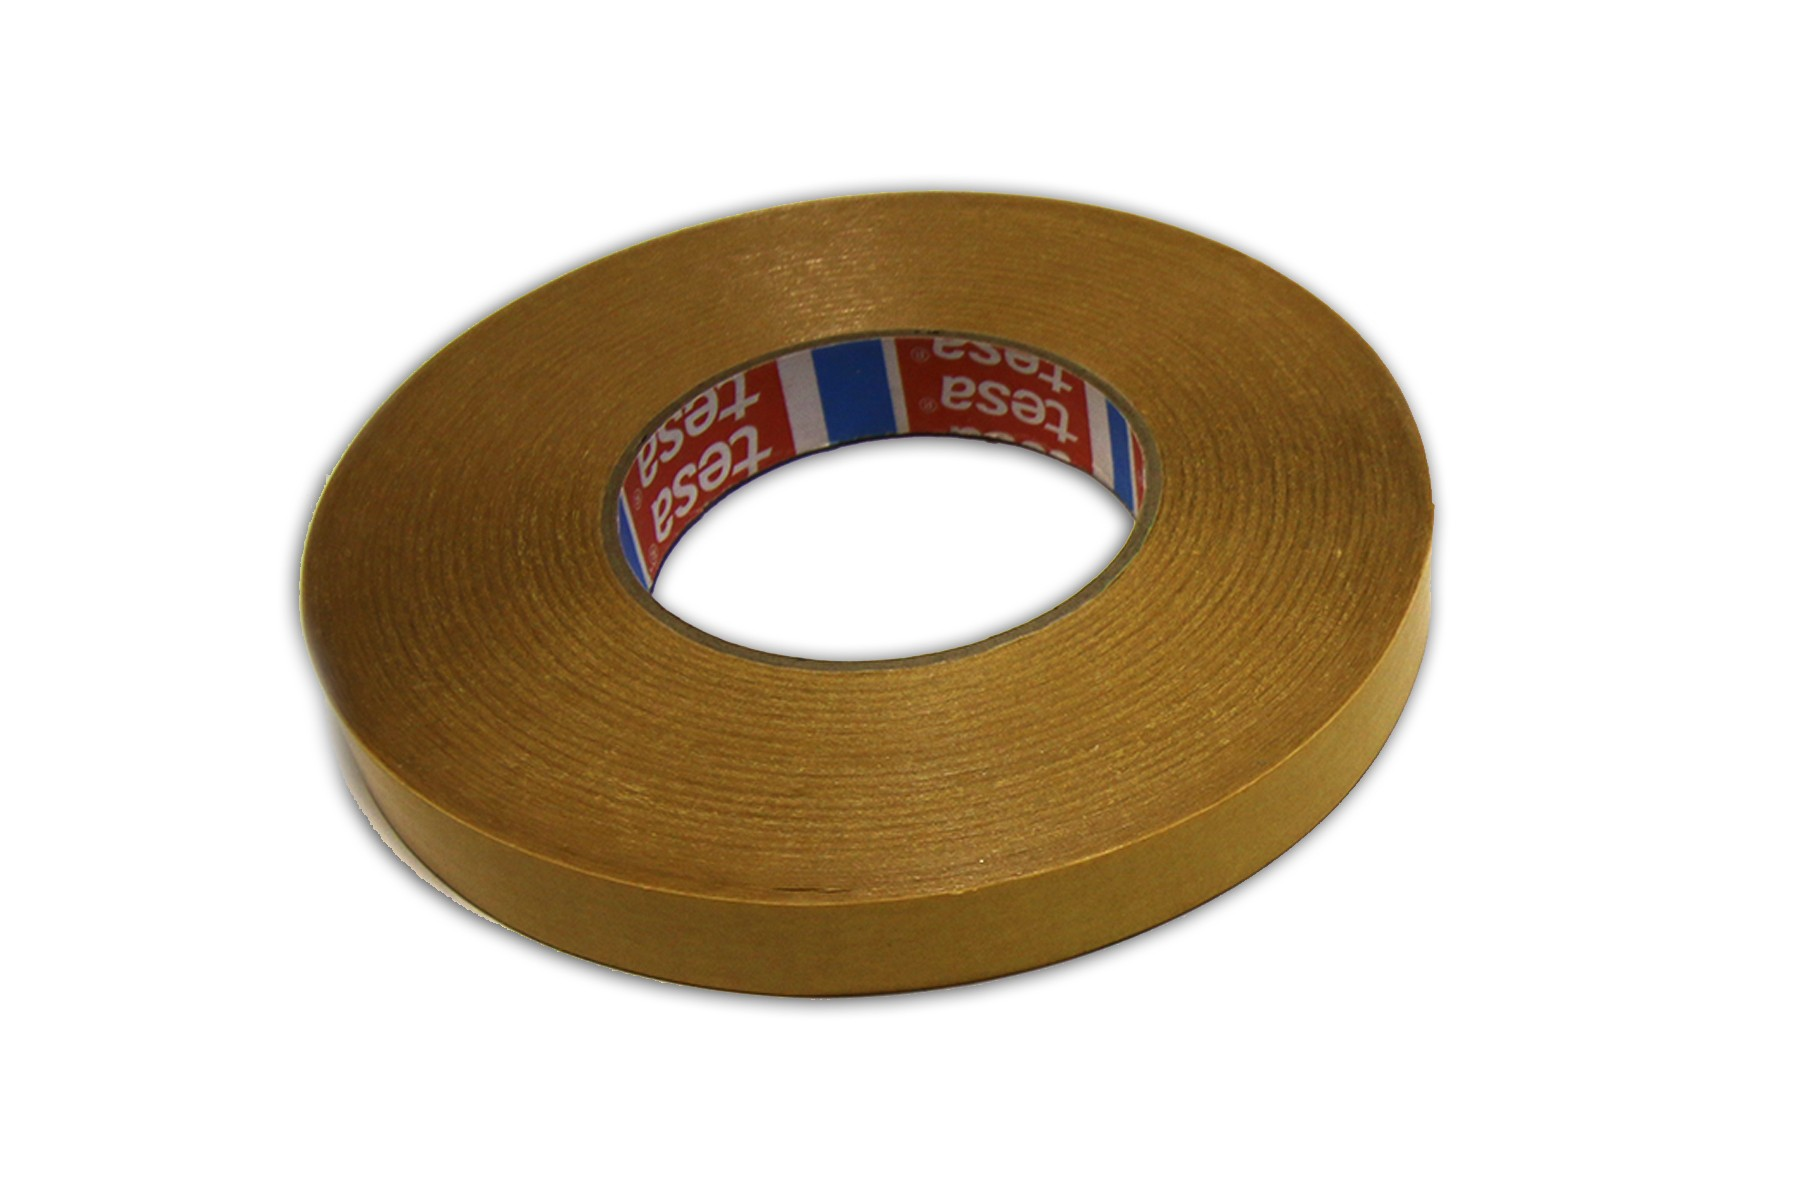 "Tesa Double Sided Application Tape, 1/2"" x 60 yd"